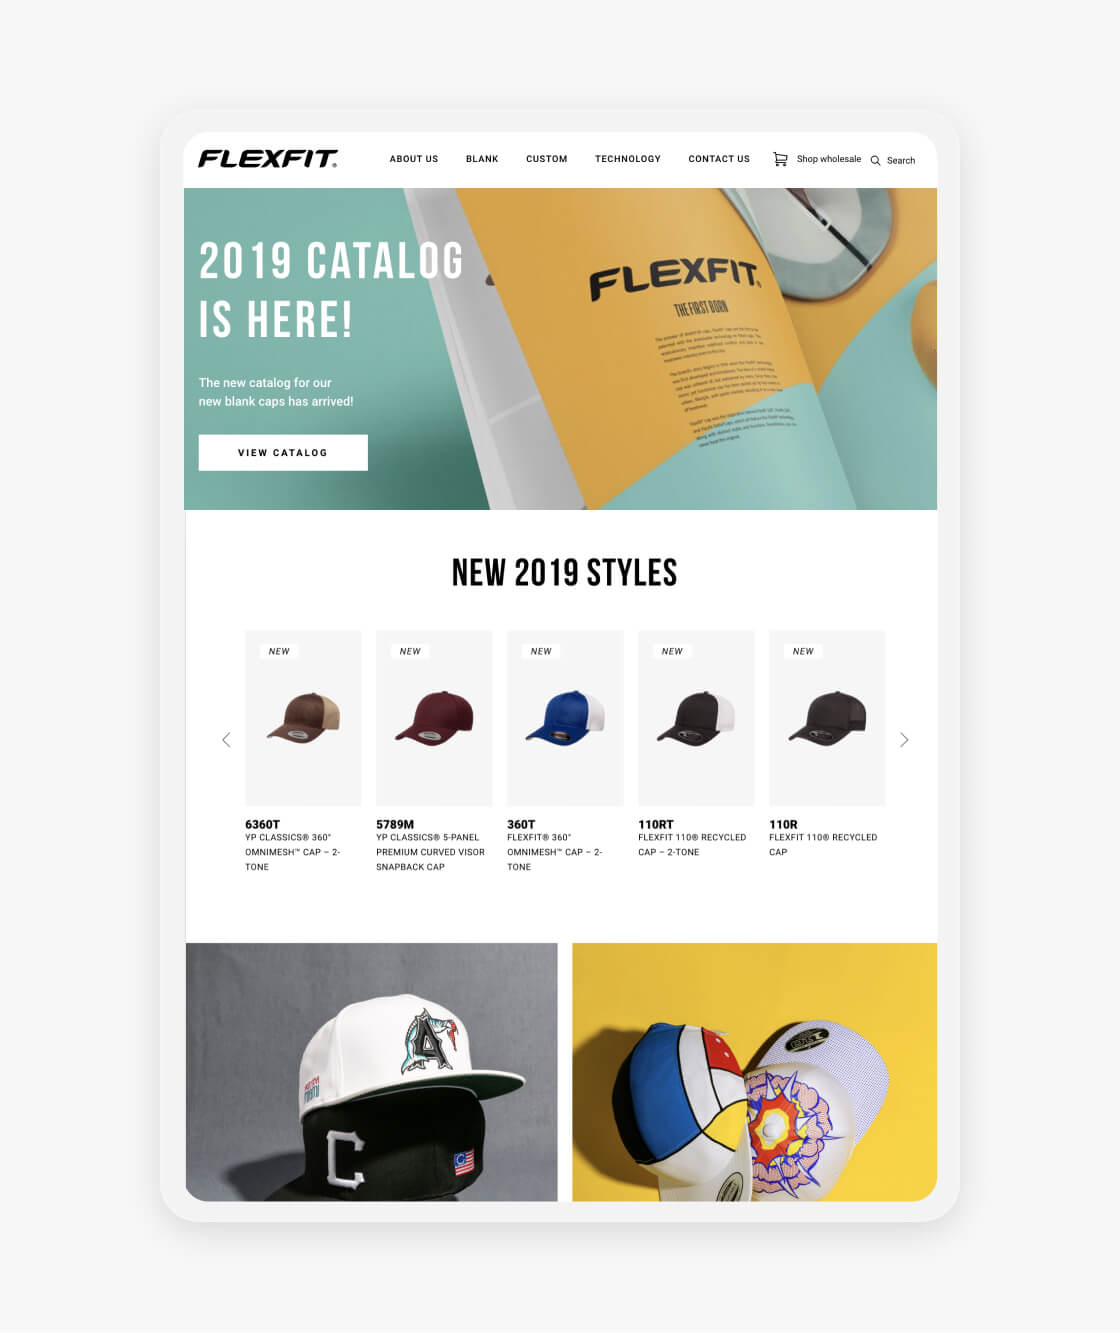 flexfit website catalog page on tablet